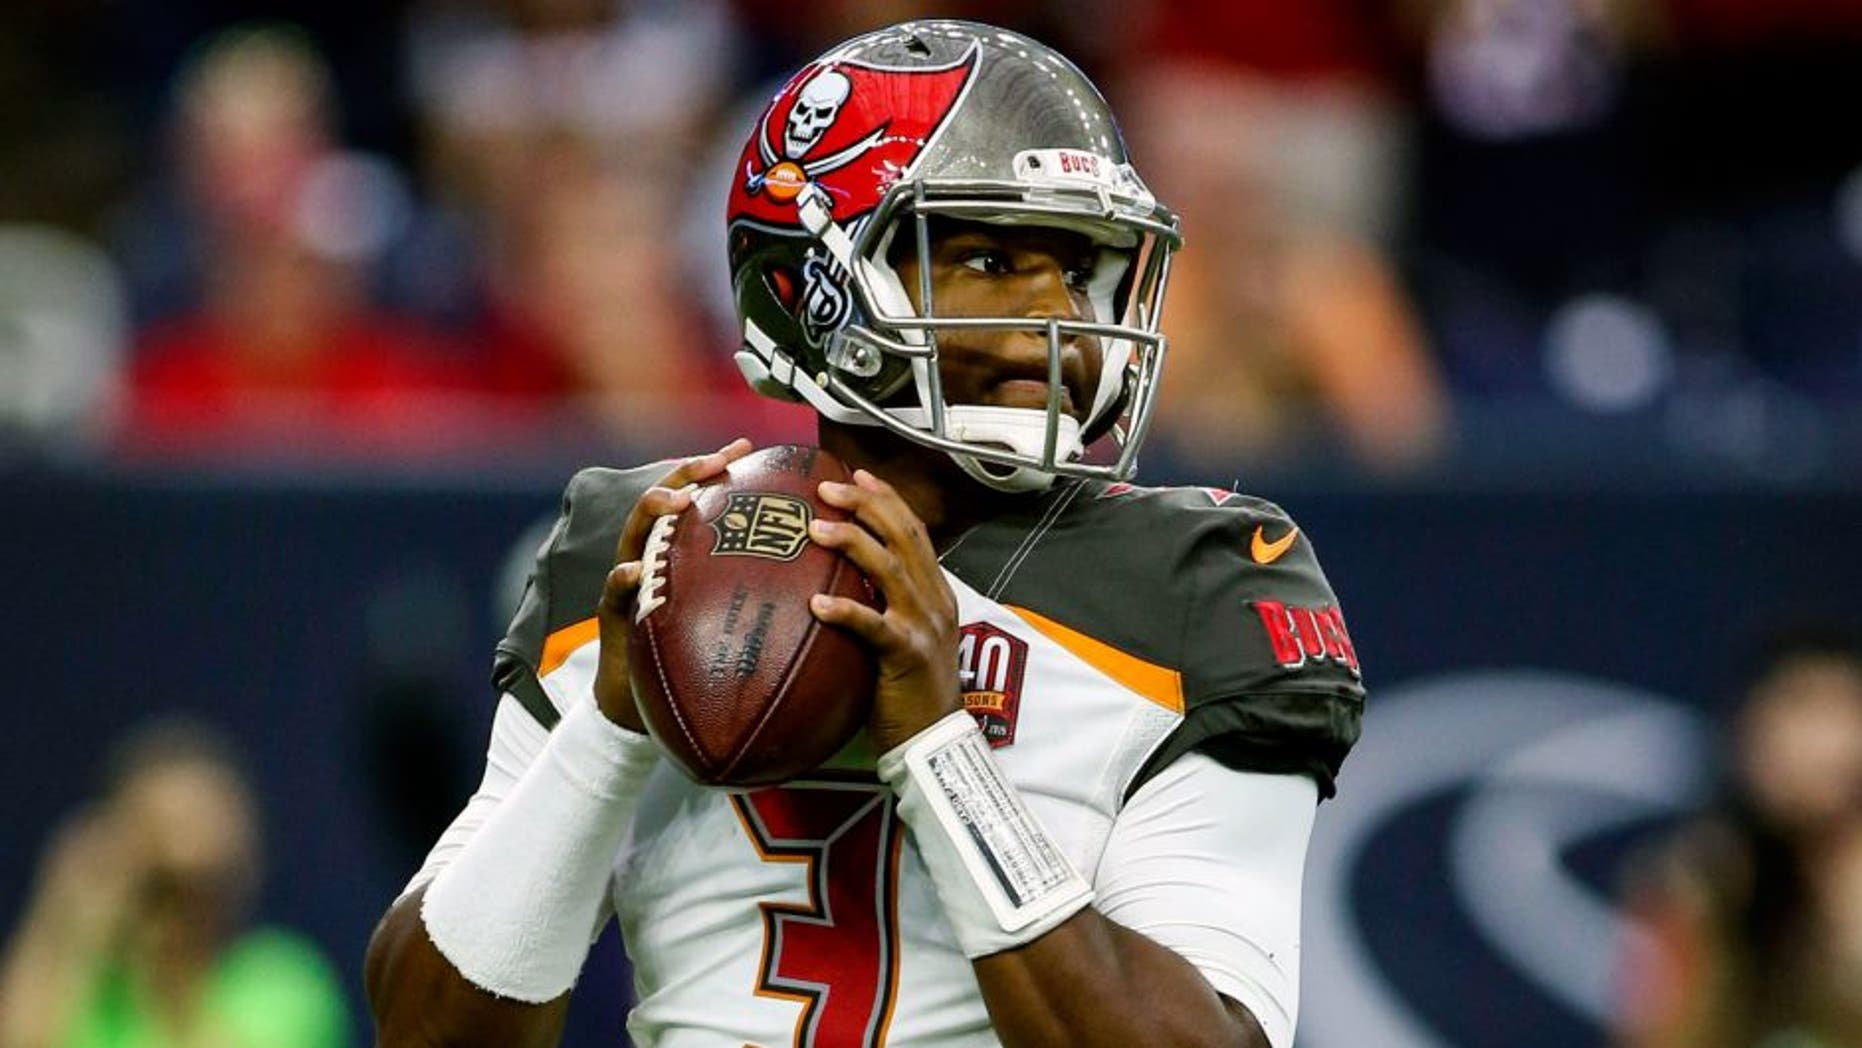 Sep 27, 2015; Houston, TX, USA; Tampa Bay Buccaneers quarterback Jameis Winston (3) looks for an open receiver during the first quarter against the Houston Texans at NRG Stadium. Mandatory Credit: Troy Taormina-USA TODAY Sports